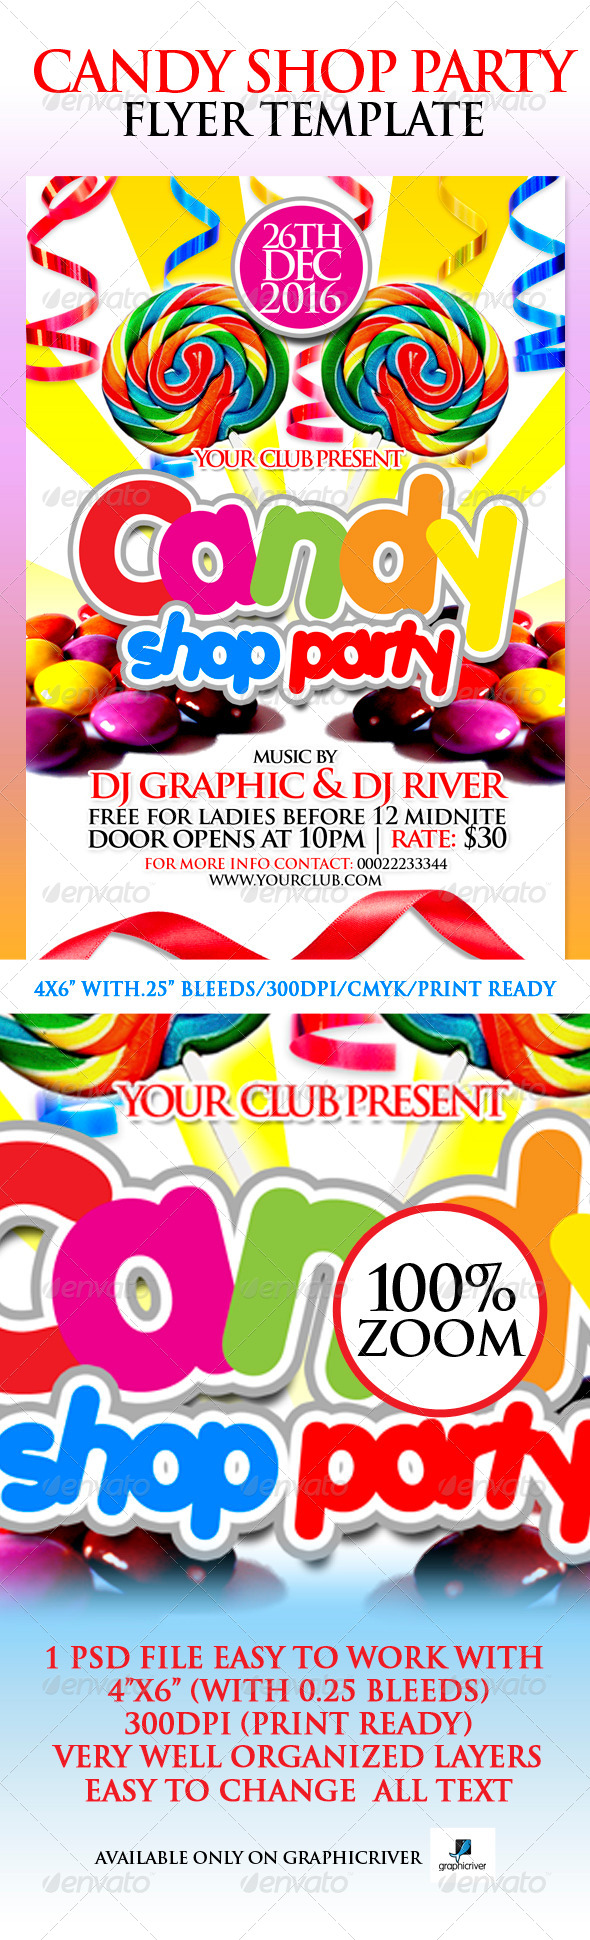 Candy Shop Party Flyer Template - Flyers Print Templates